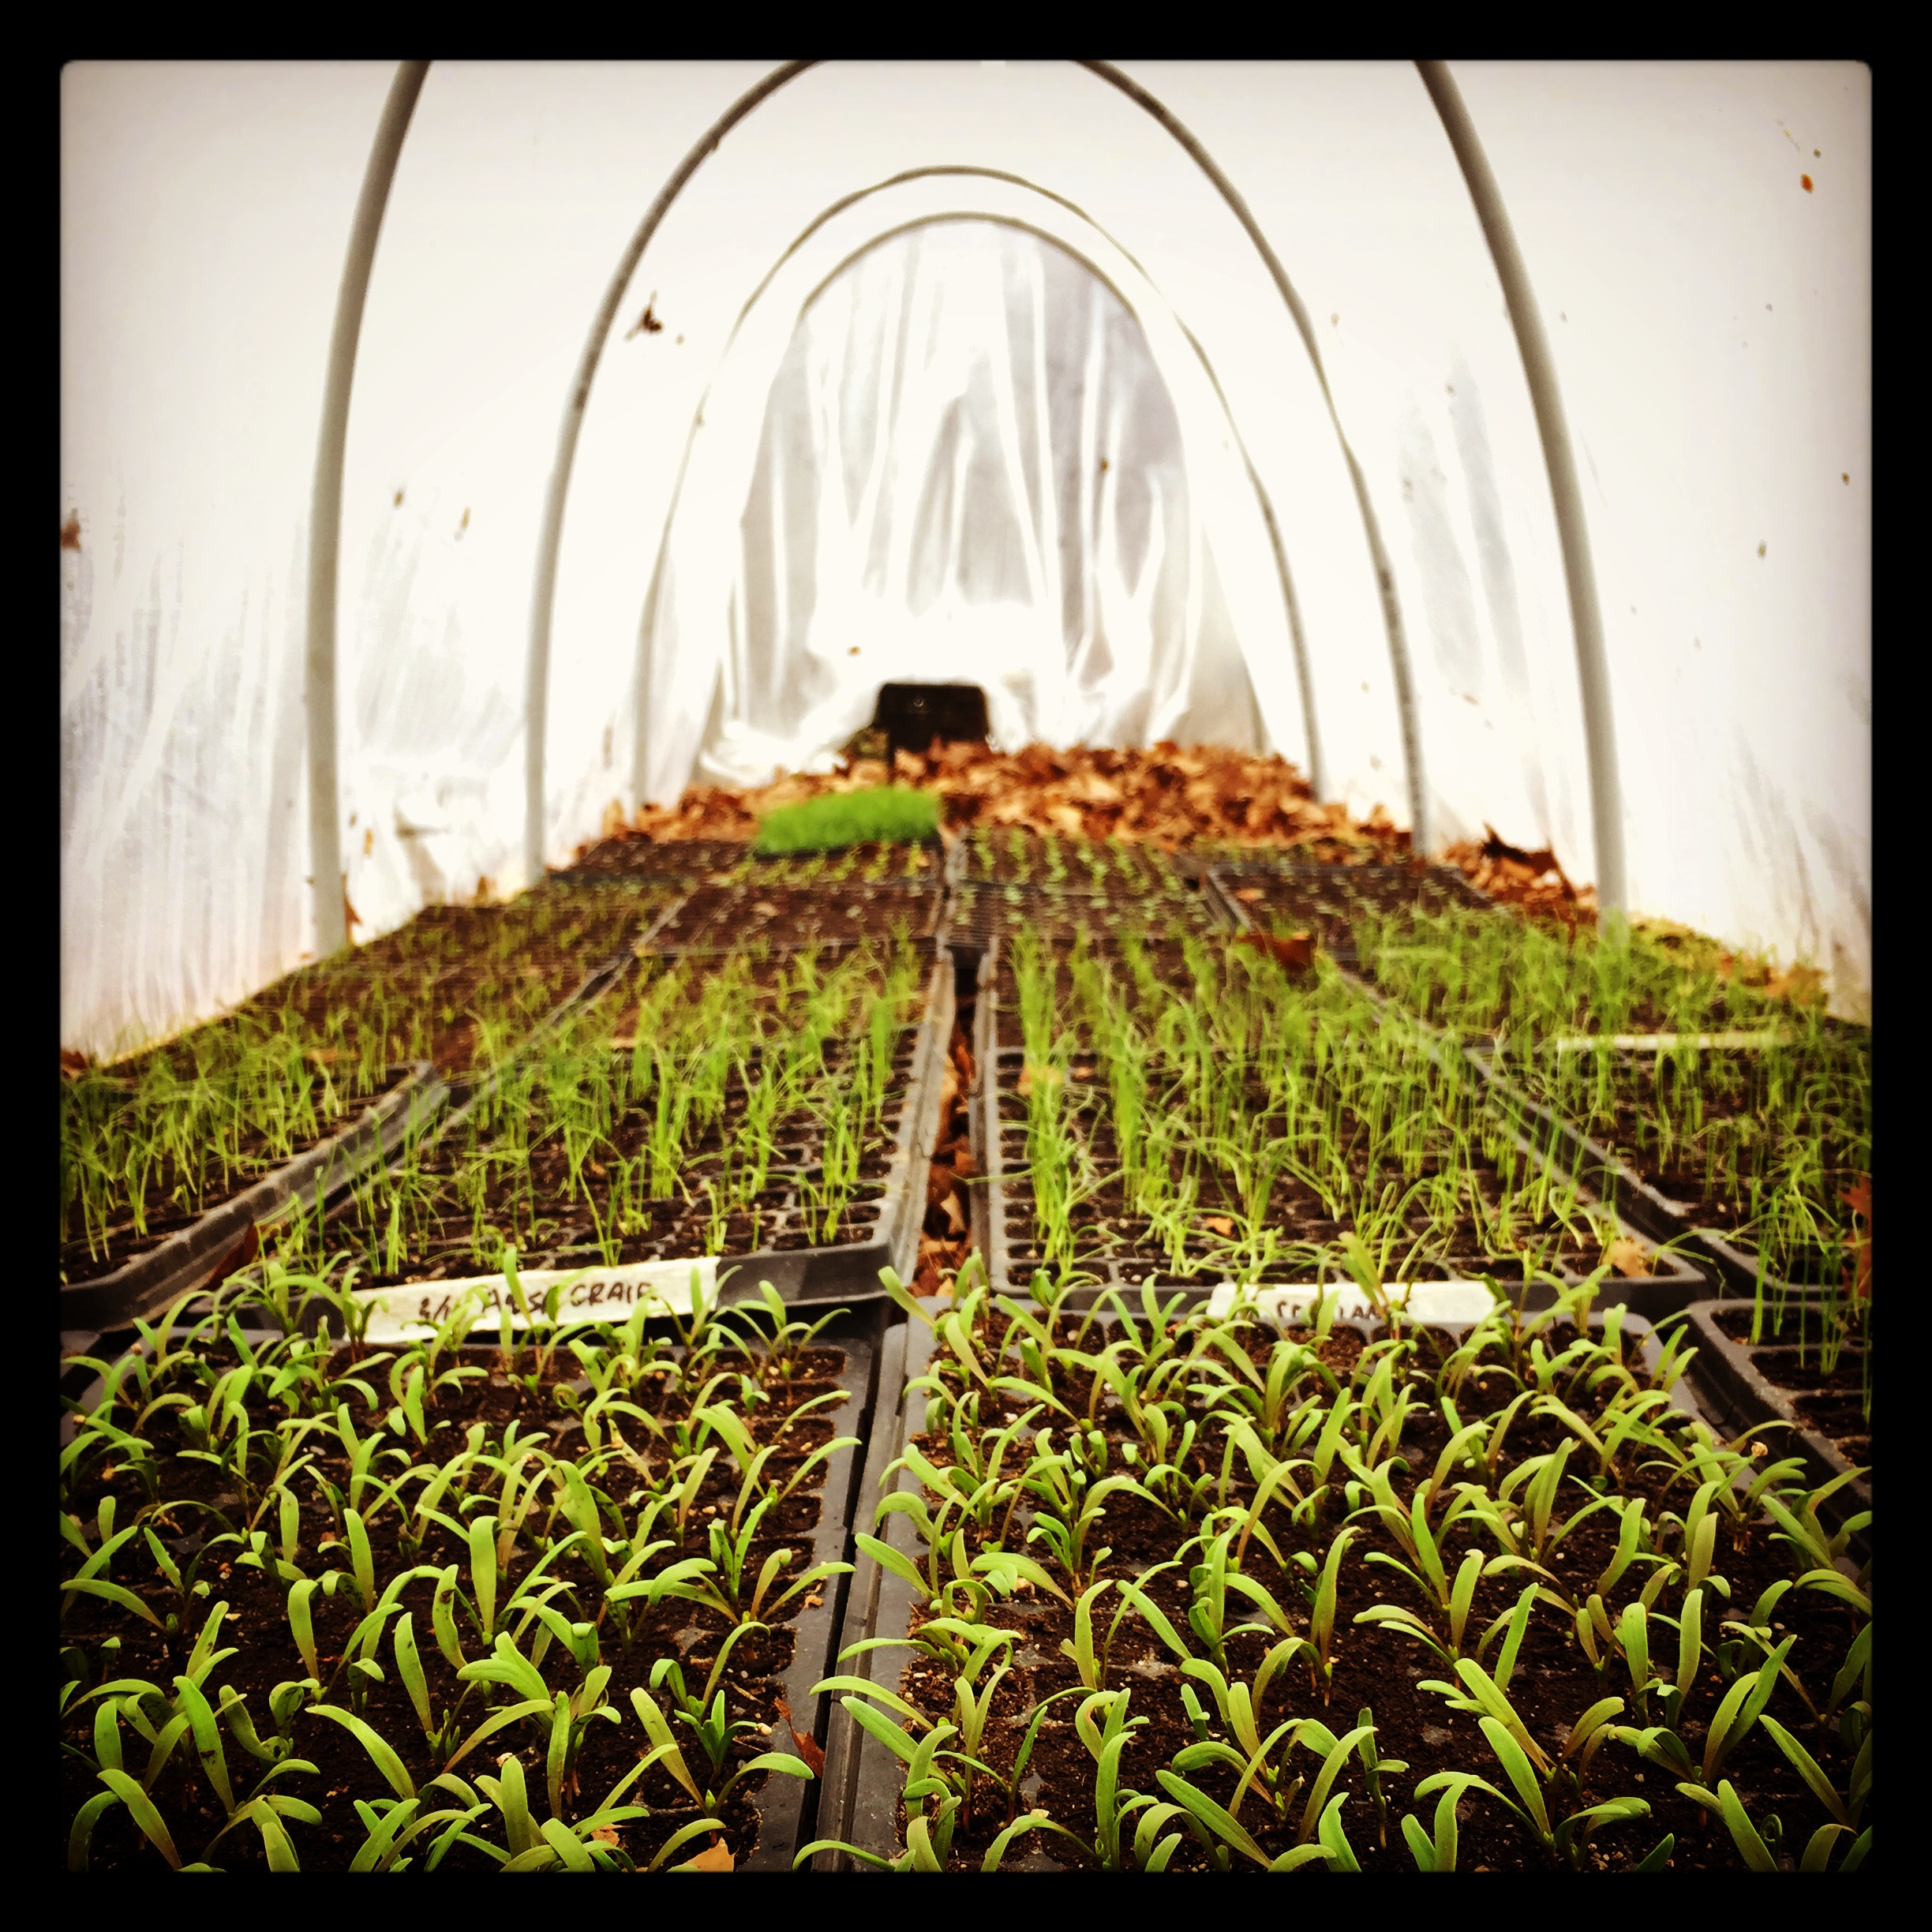 seedlings in the low tunnel